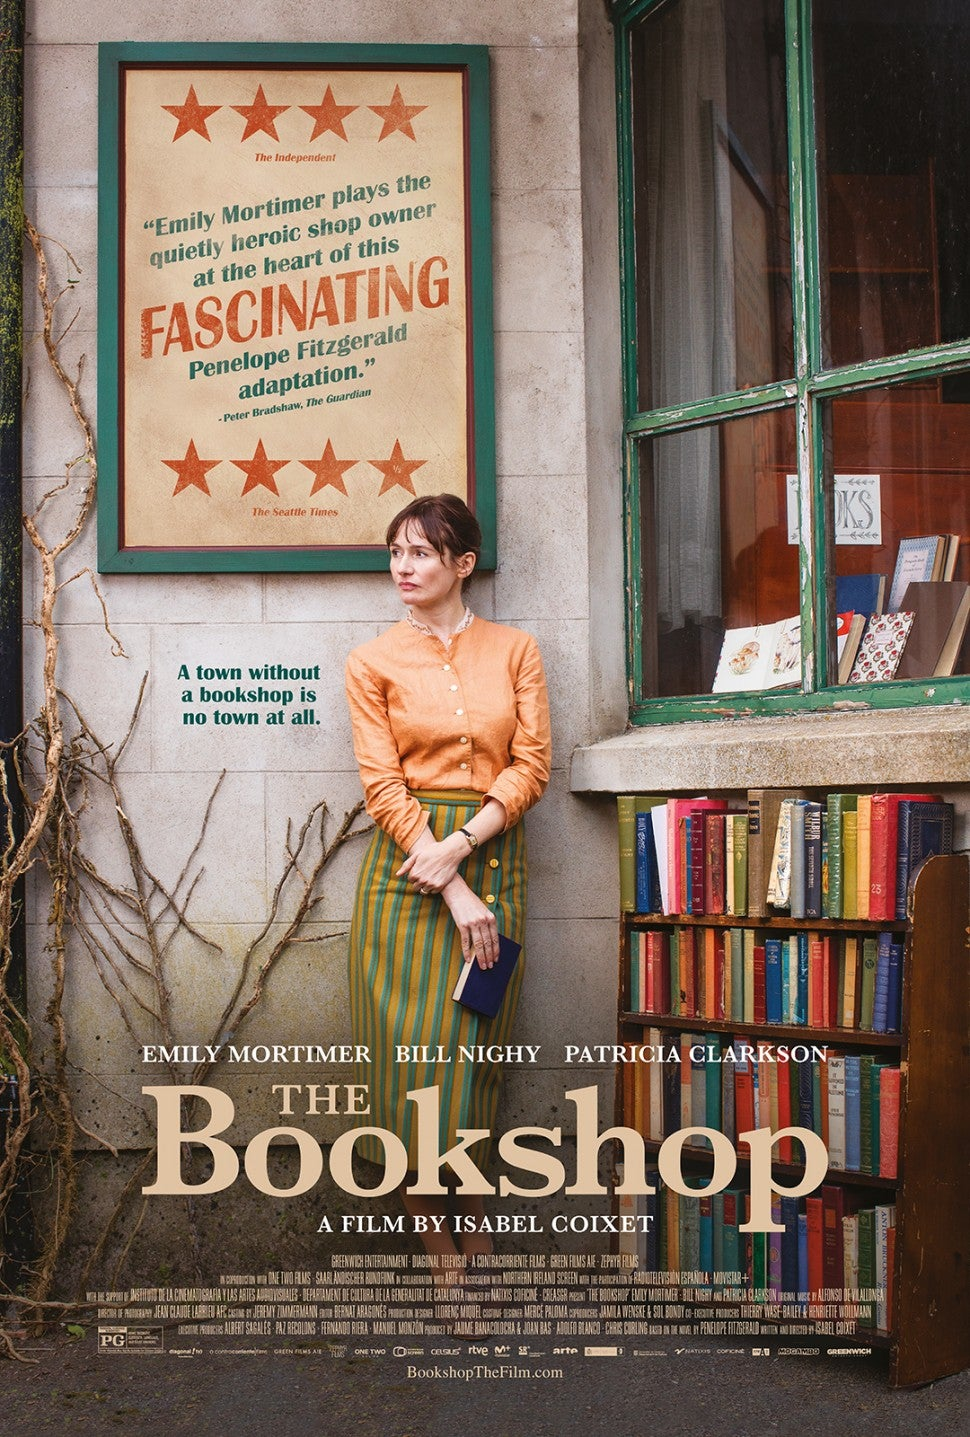 The Bookshop, Emily Mortimer